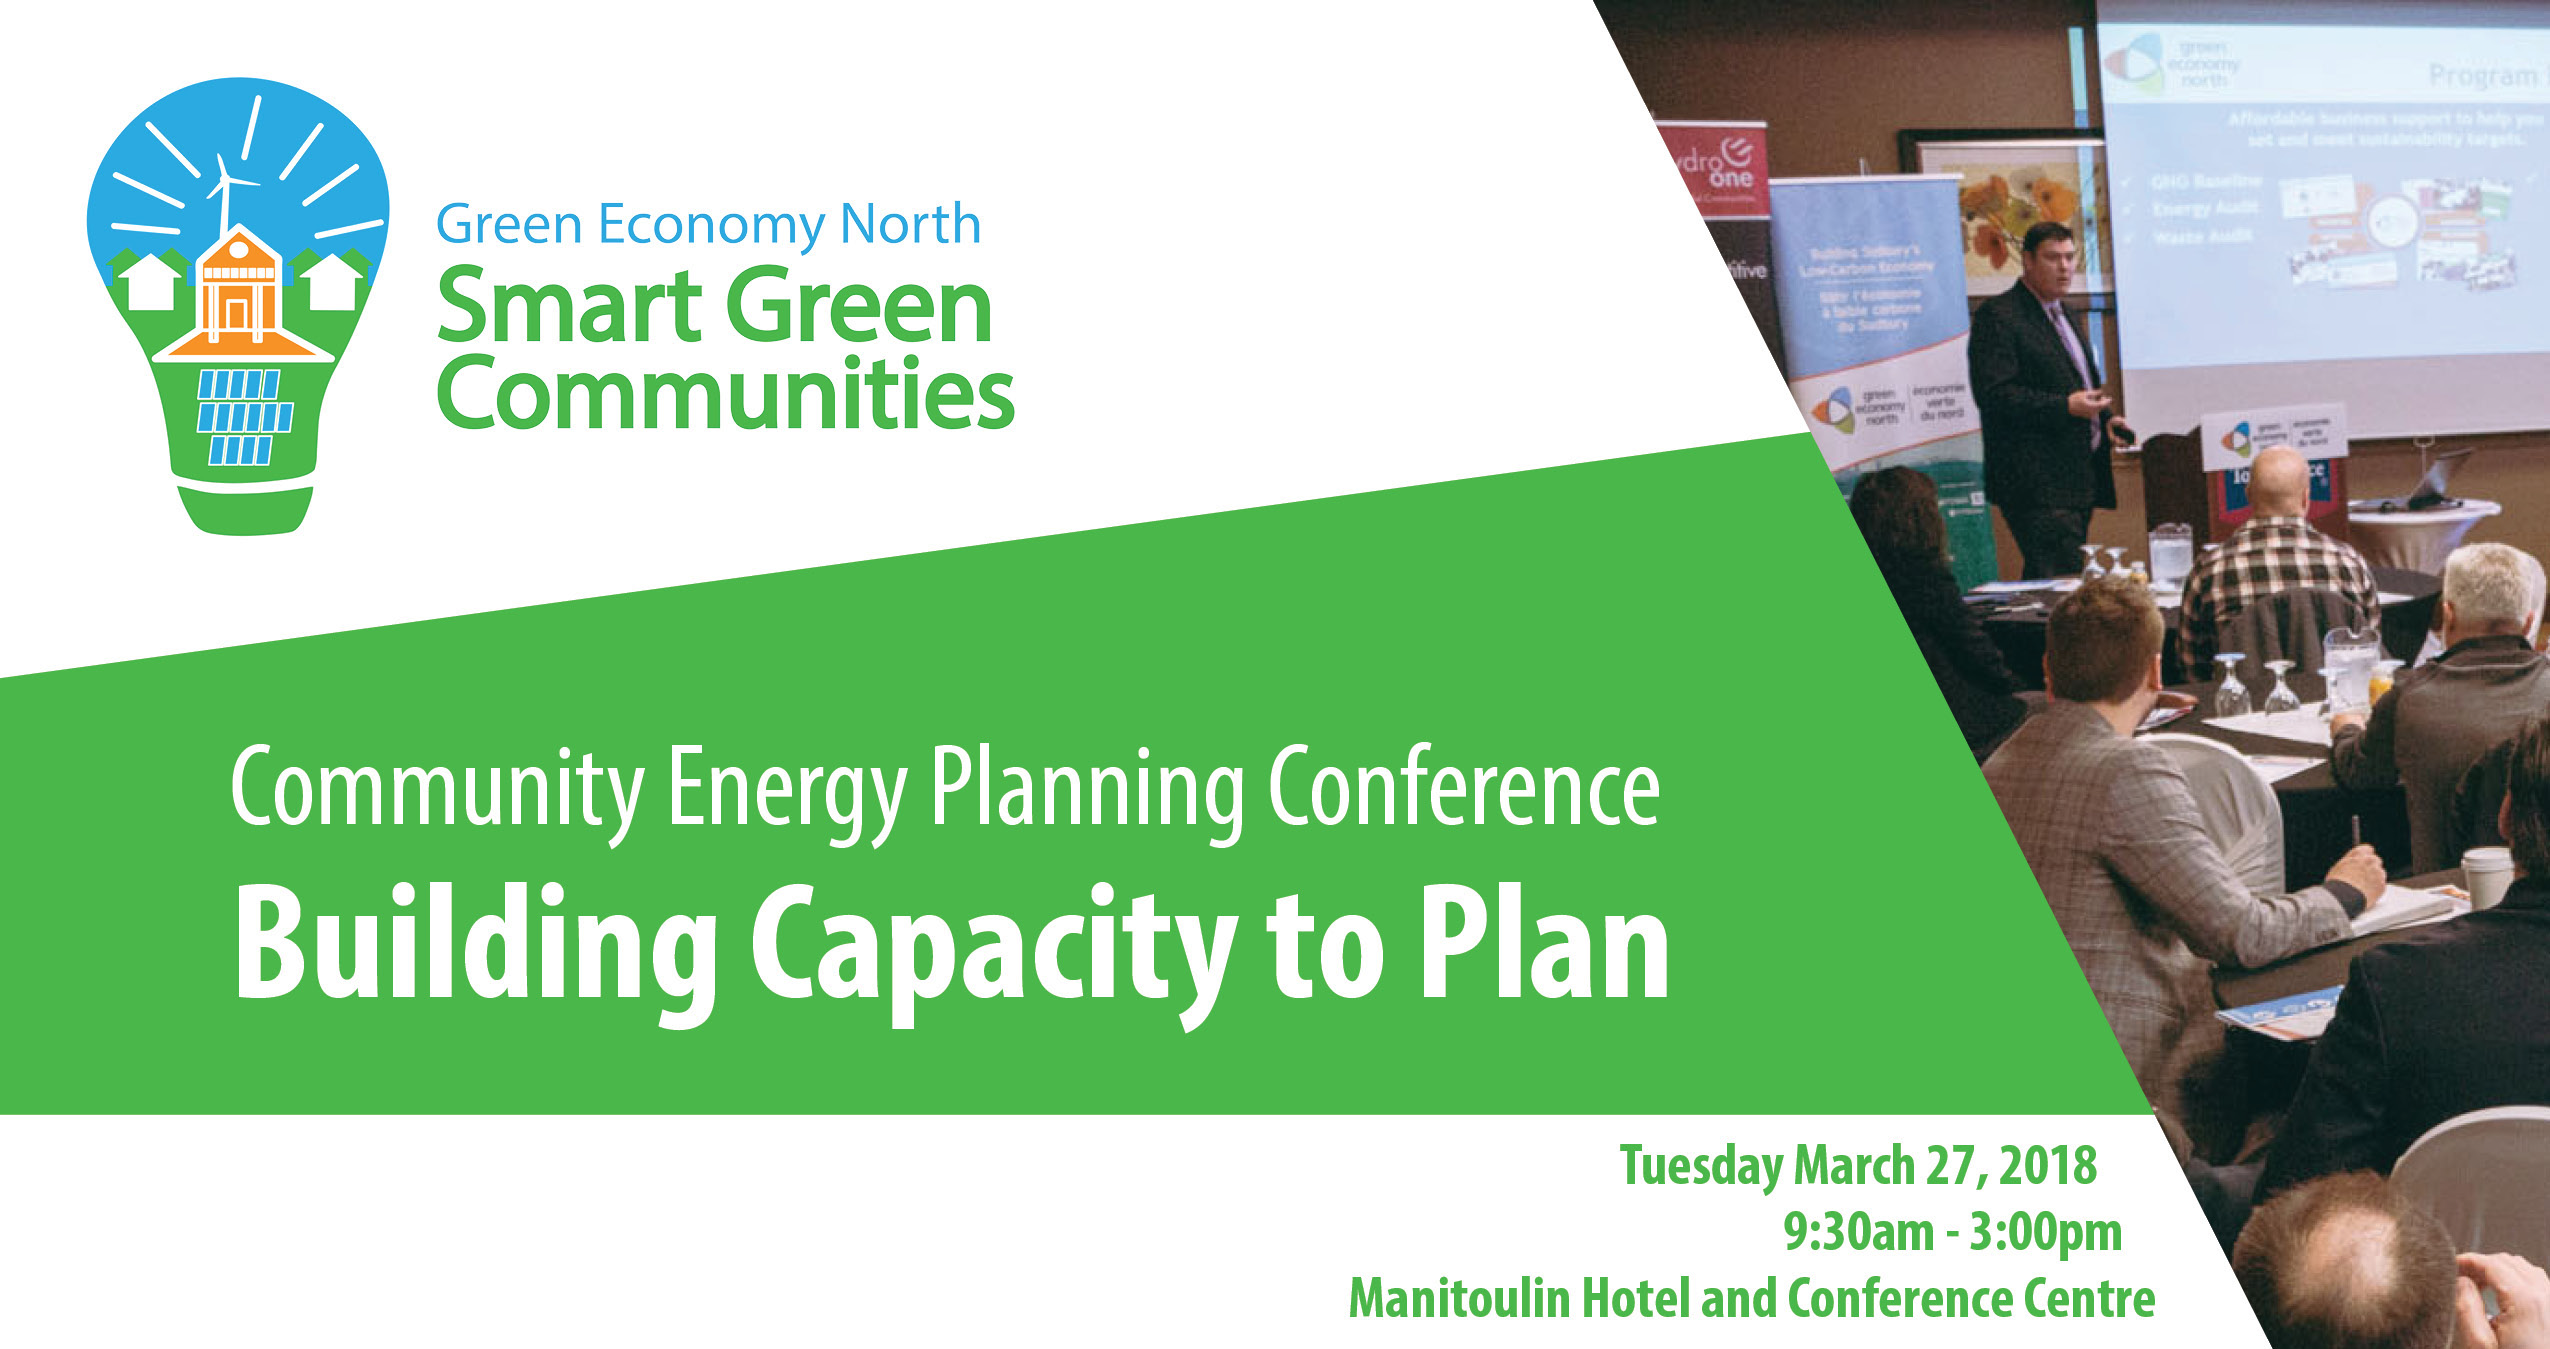 register online: https://www.eventbrite.com/e/community-energy-planning-conference-building-capacity-to-plan-tickets-42919105199